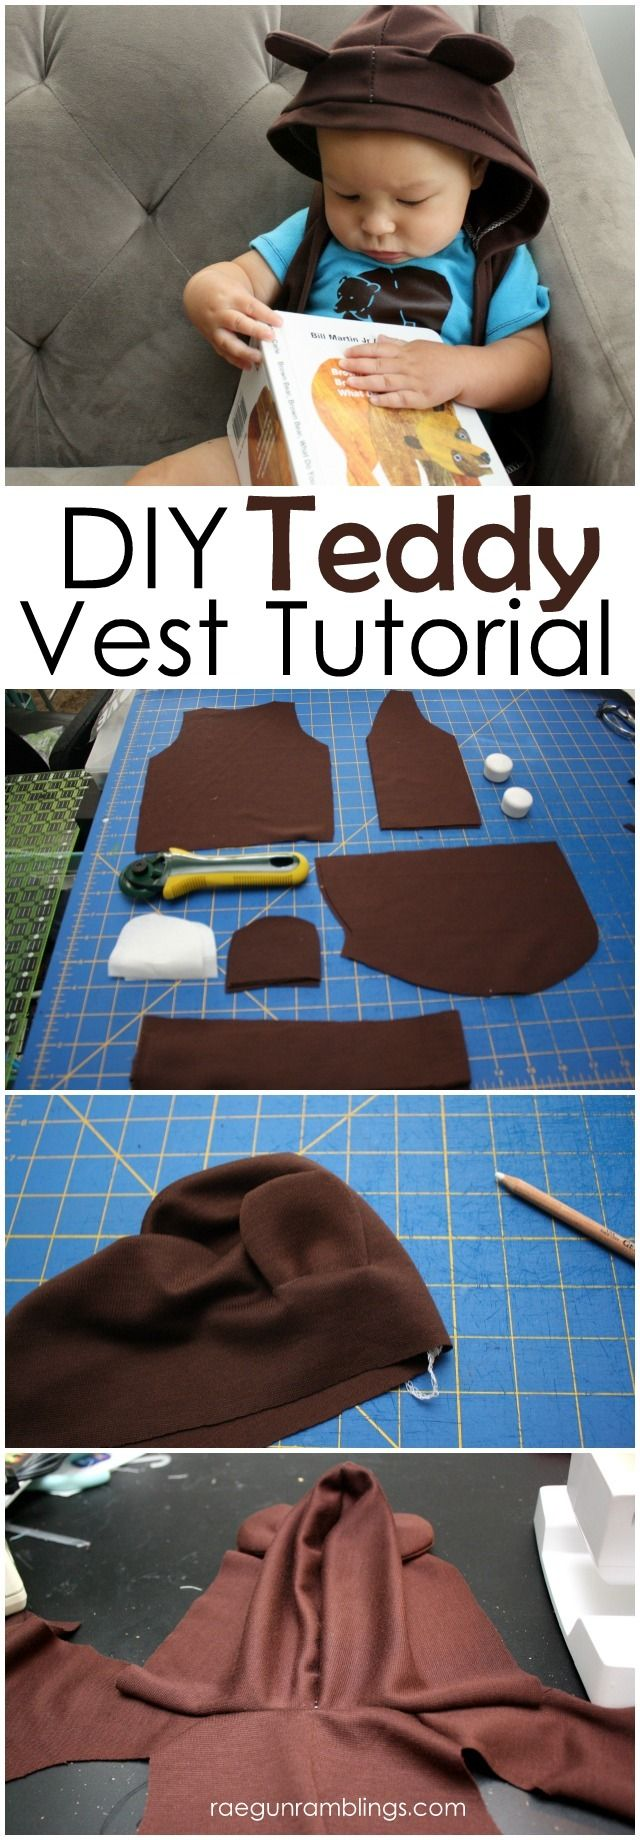 DIY Teddy Vest Tutorial and how to make a pattern in any size fun shirt or costume idea - Rae GUn Ramblings